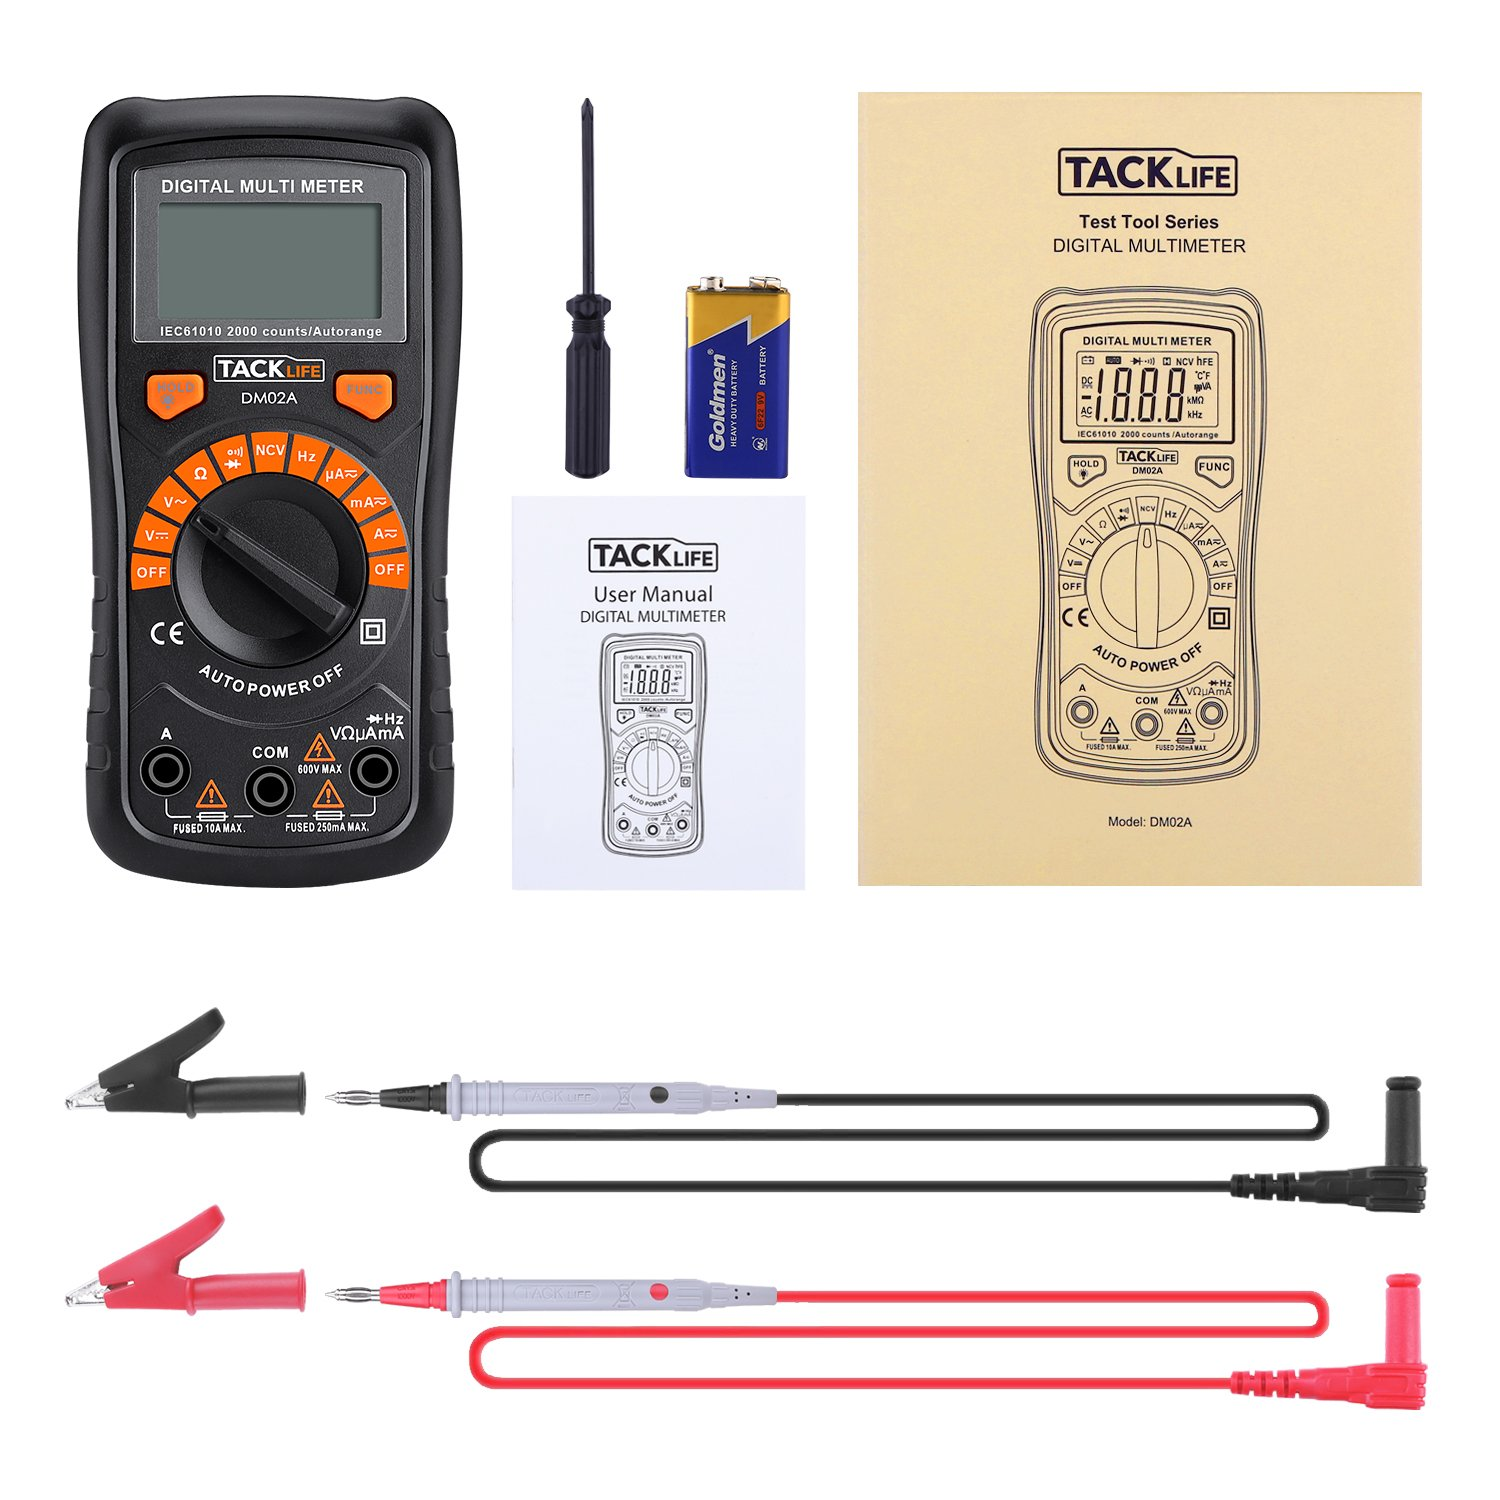 Multimeter Tacklife DM02S Auto-Ranging Digital Multimeters NCV Electrical Tester Multimeter Tester Volt Amp Ohm Diode, Continuity Test Meter LCD Backlight Measurement Tools with Screwdriver by TACKLIFE (Image #8)